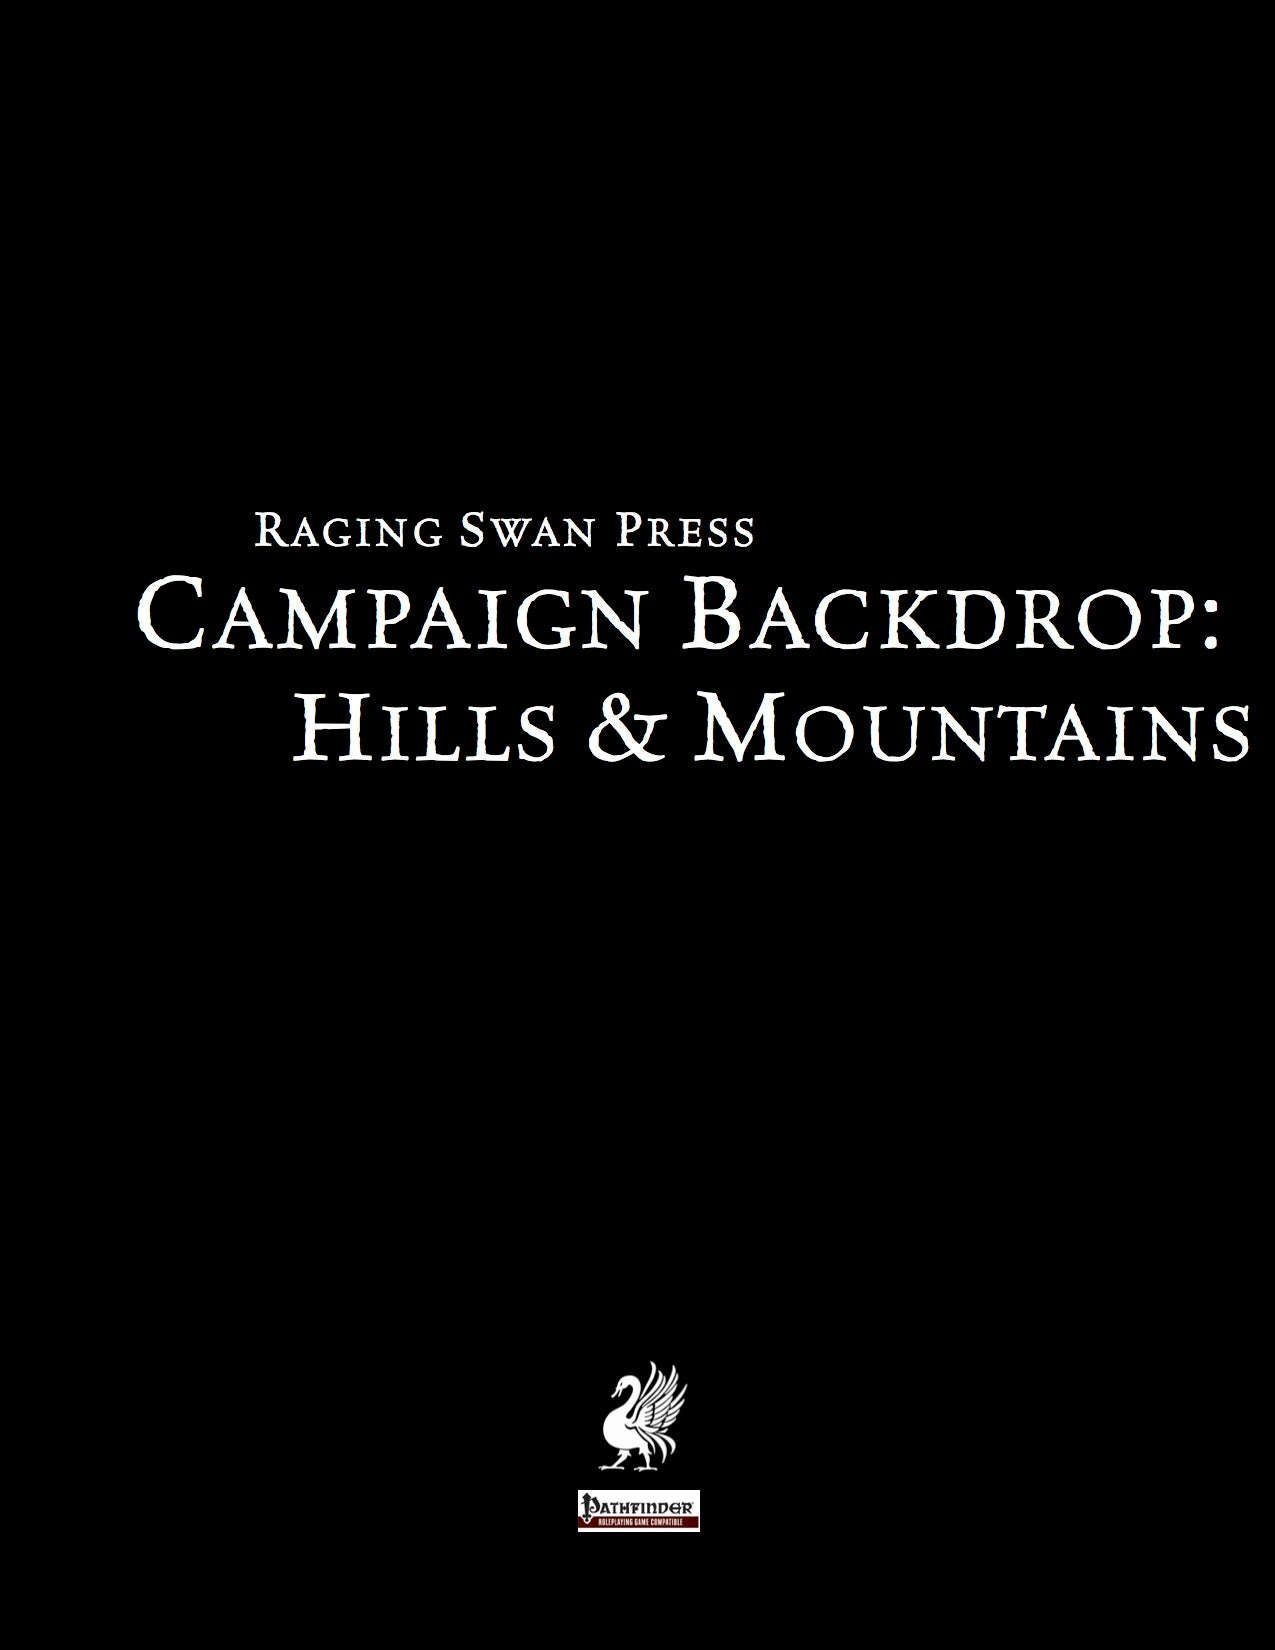 Campaign Backdrop: Hills & Mountains